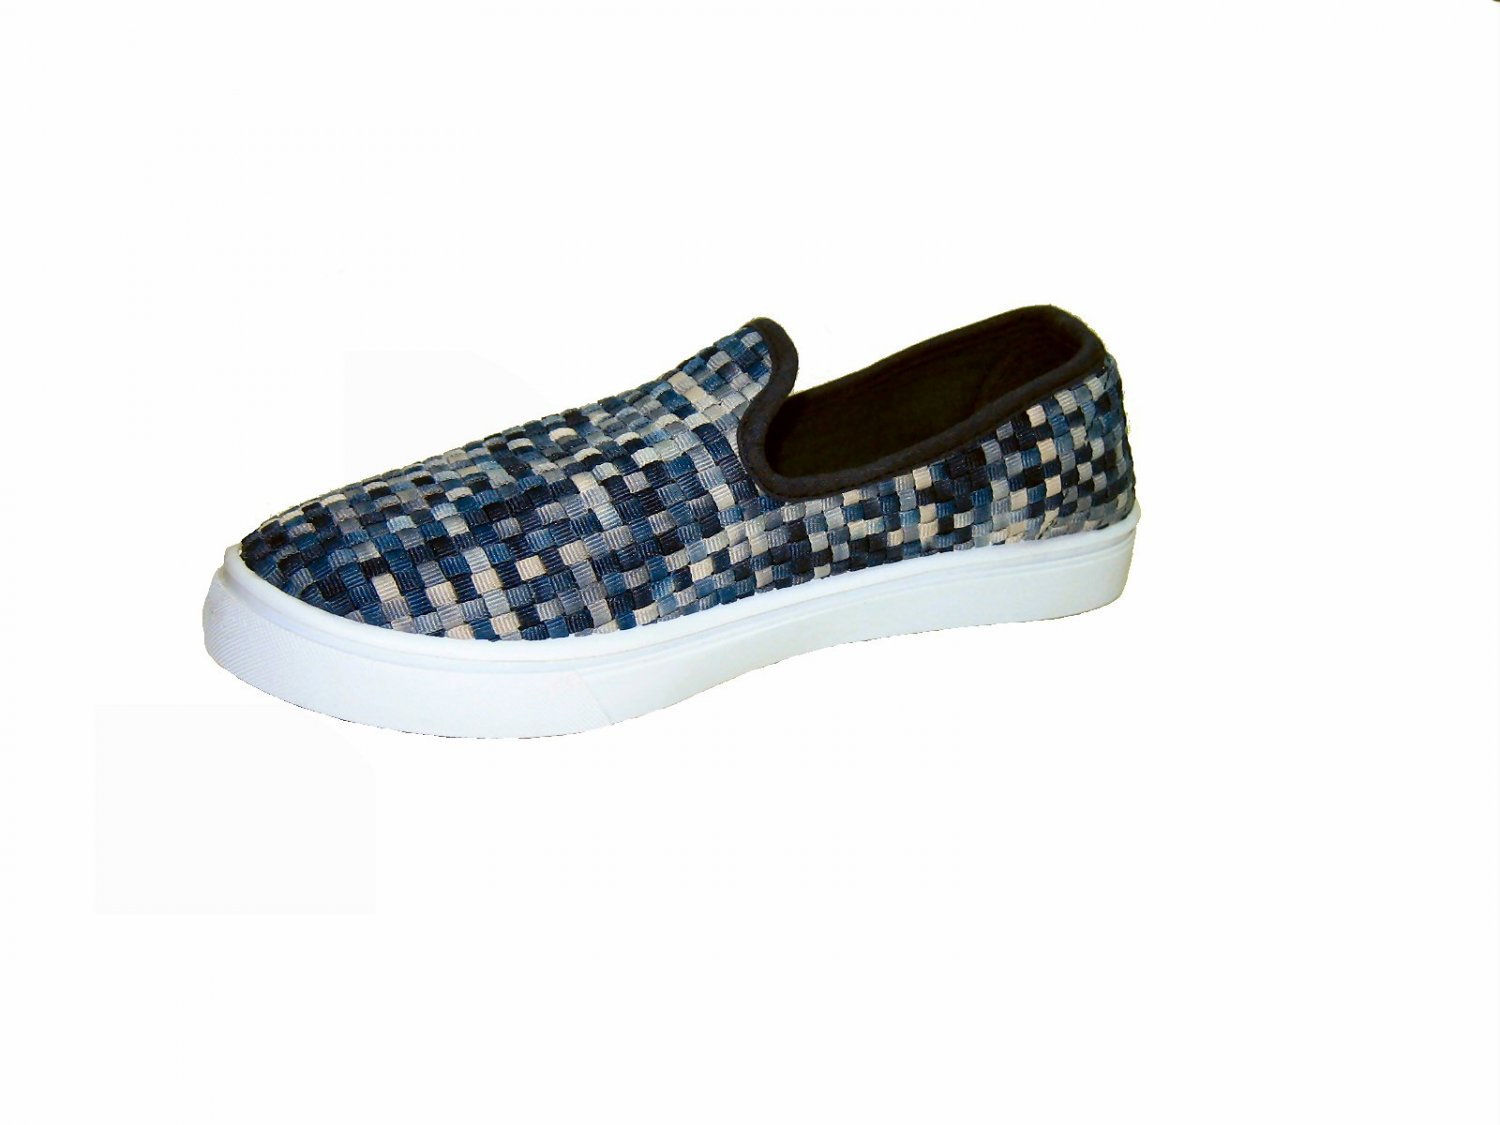 Top Moda AD-53 women's vegan slip on sneakers comfort flats shoes weave pattern navy multi size 5